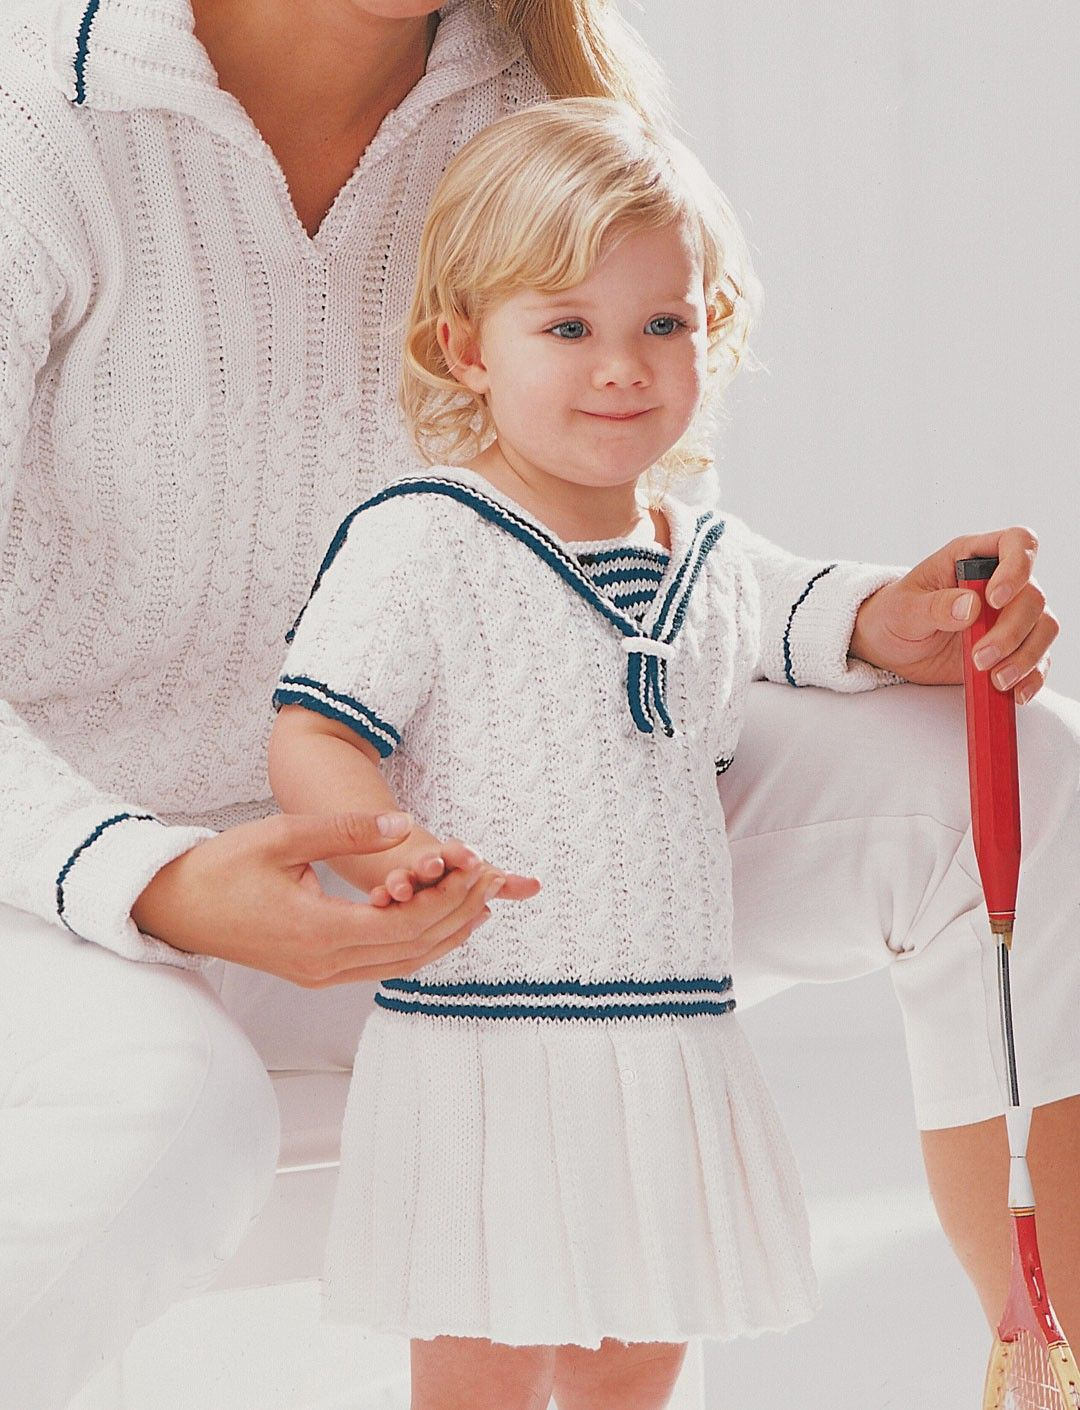 Yarnspirations patons sailor dress patterns yarnspirations patons sailor dress patterns yarnspirations omg difficulty level baby knittingfree bankloansurffo Image collections